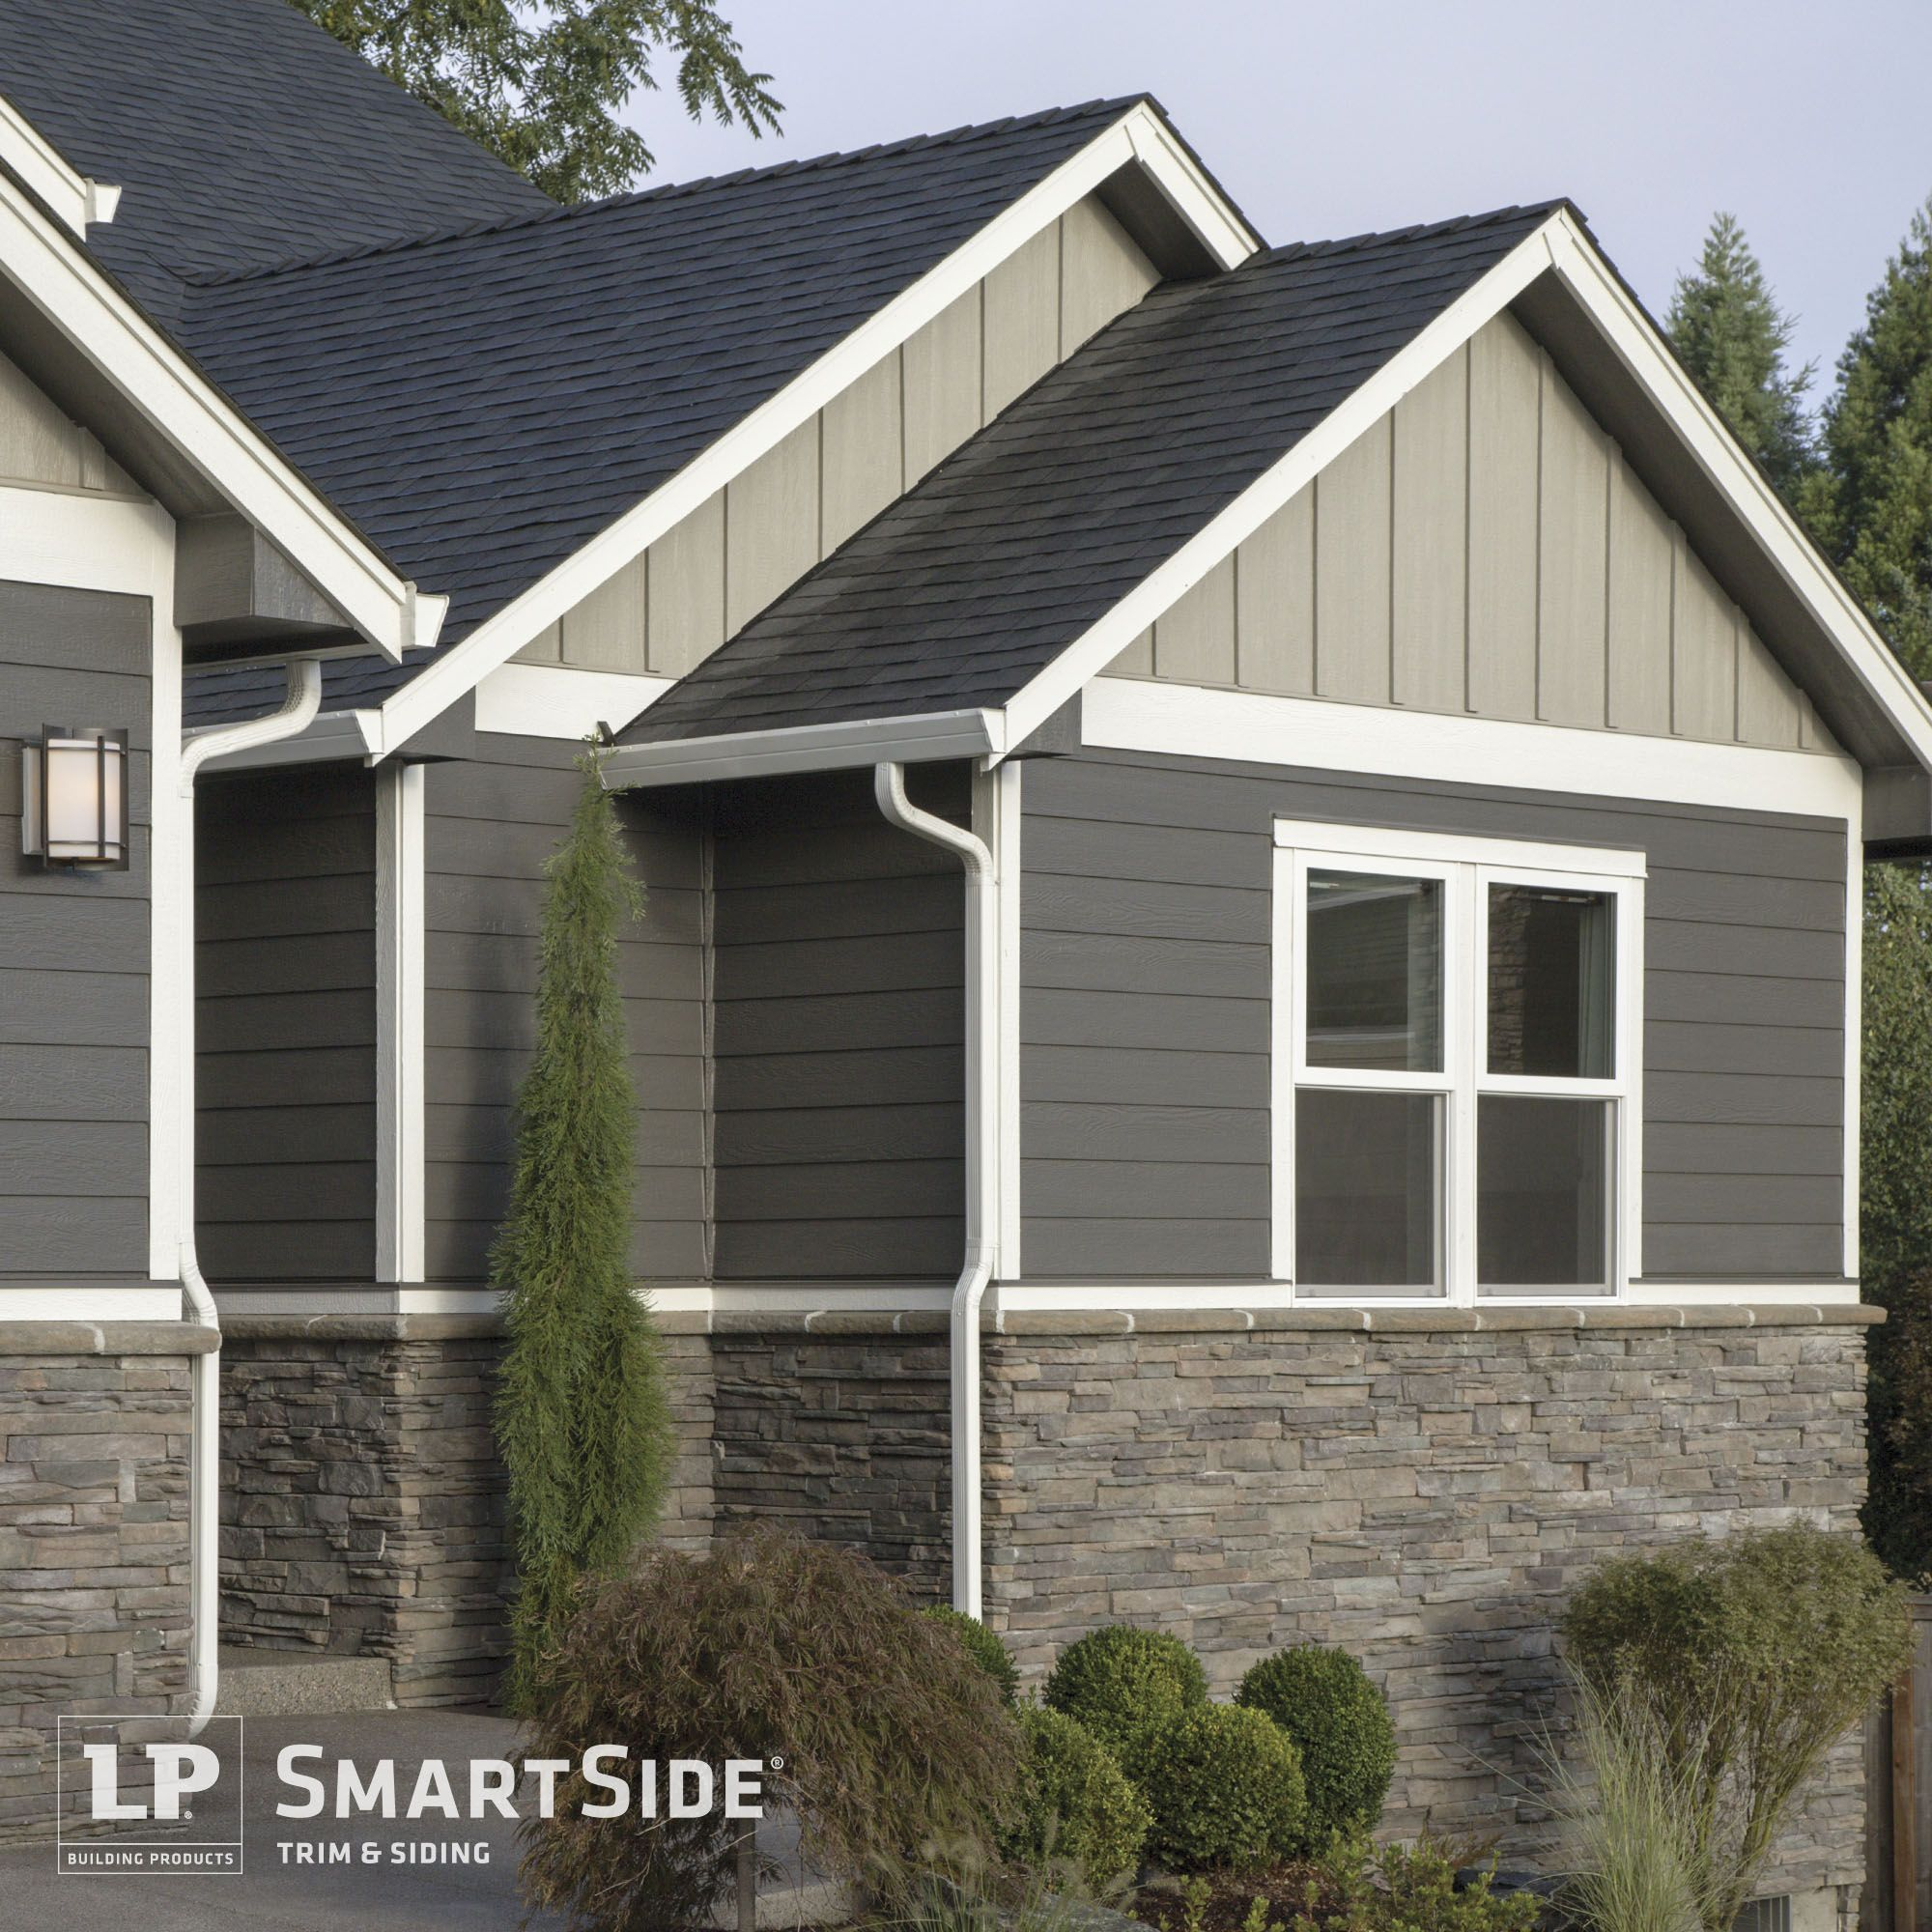 Horizontal Board And Batten Siding Lp Smartside Trim Lap And Panel Siding Pair With